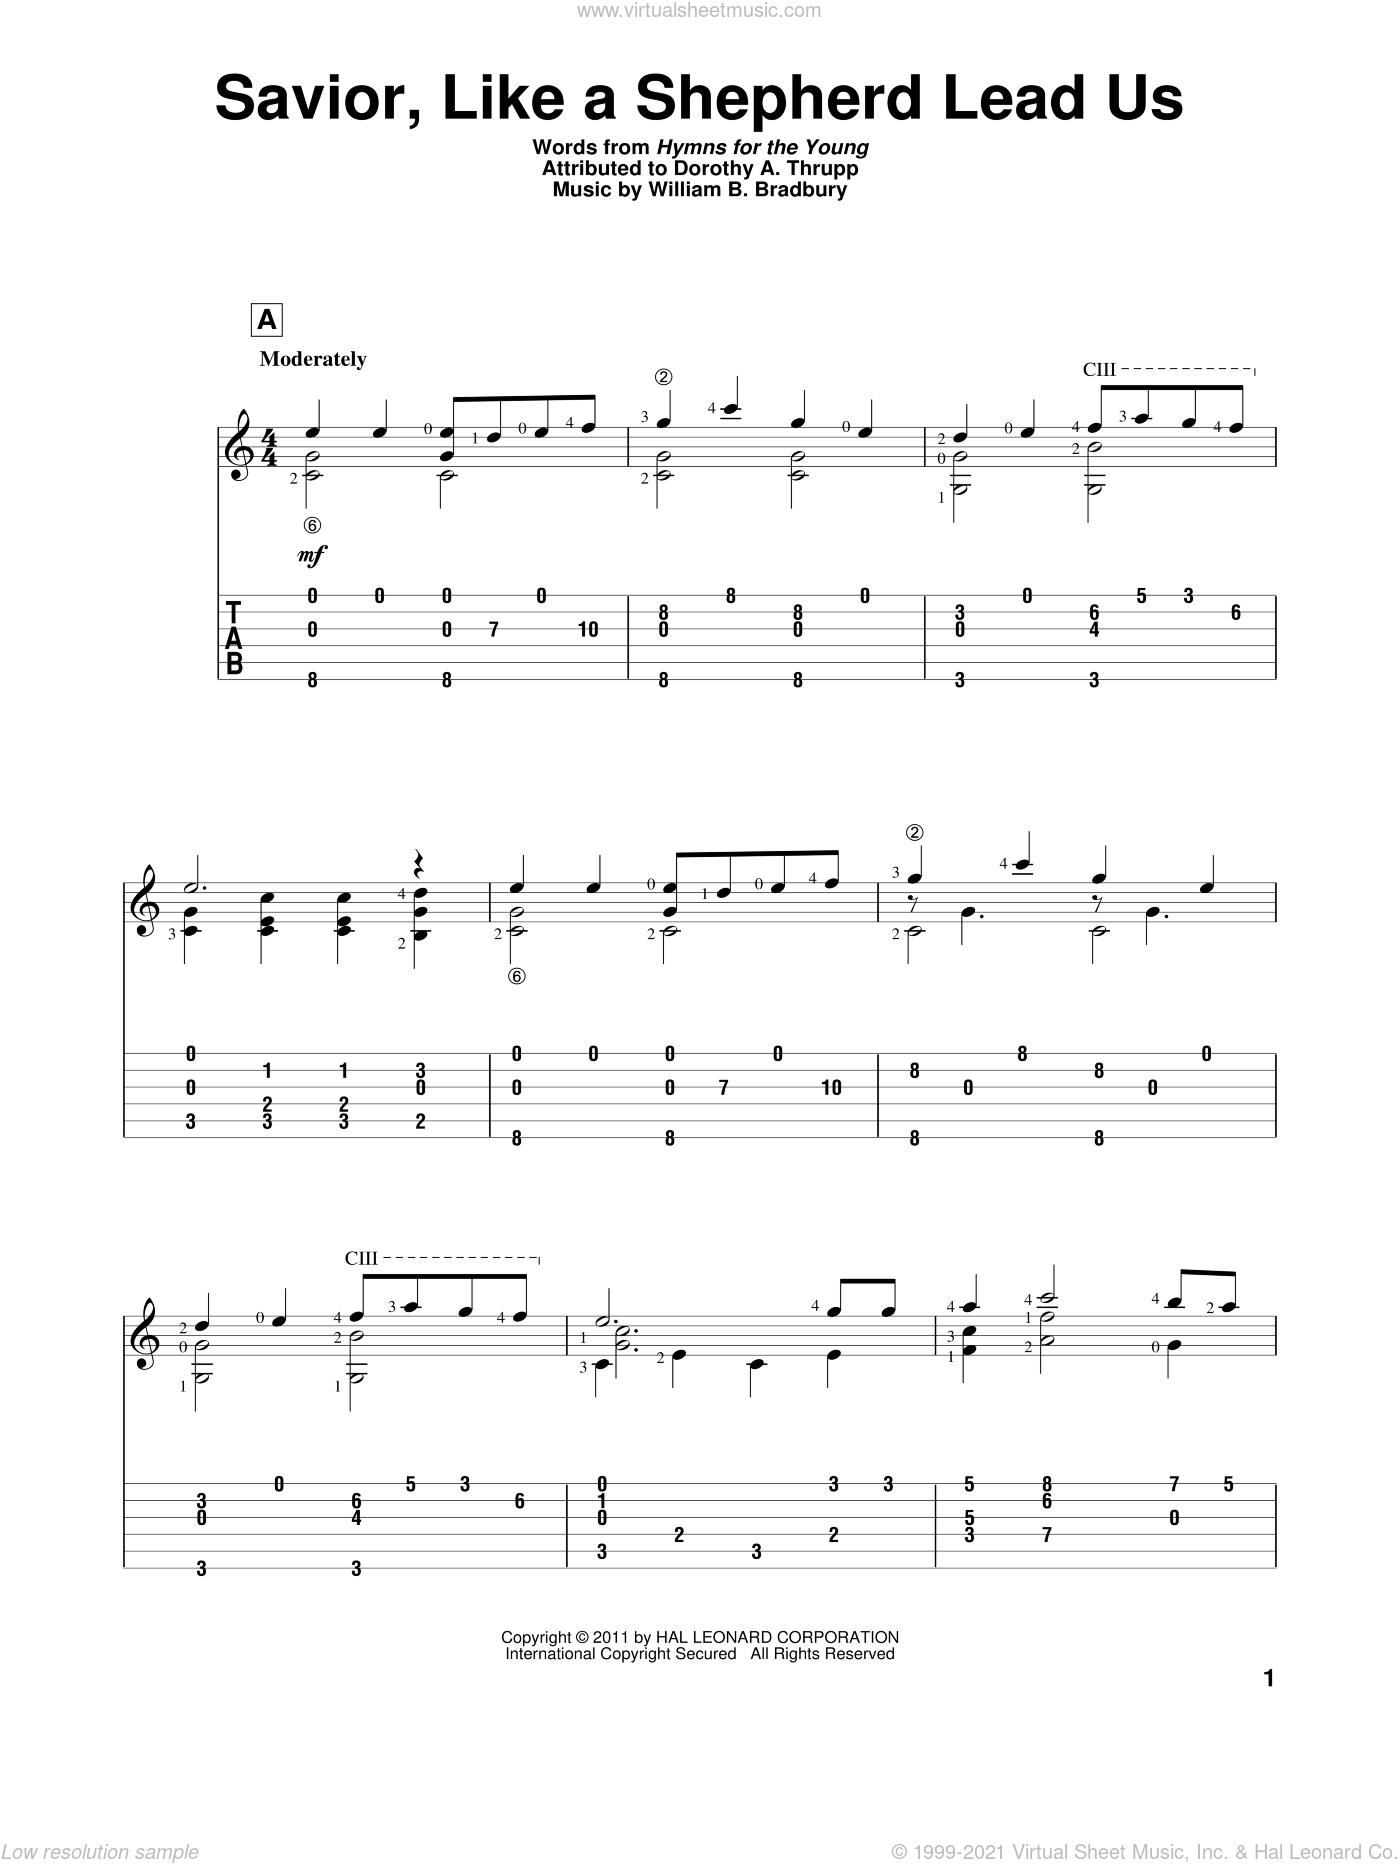 Savior, Like A Shepherd Lead Us sheet music for guitar solo by Dorothy A. Thrupp and William B. Bradbury. Score Image Preview.